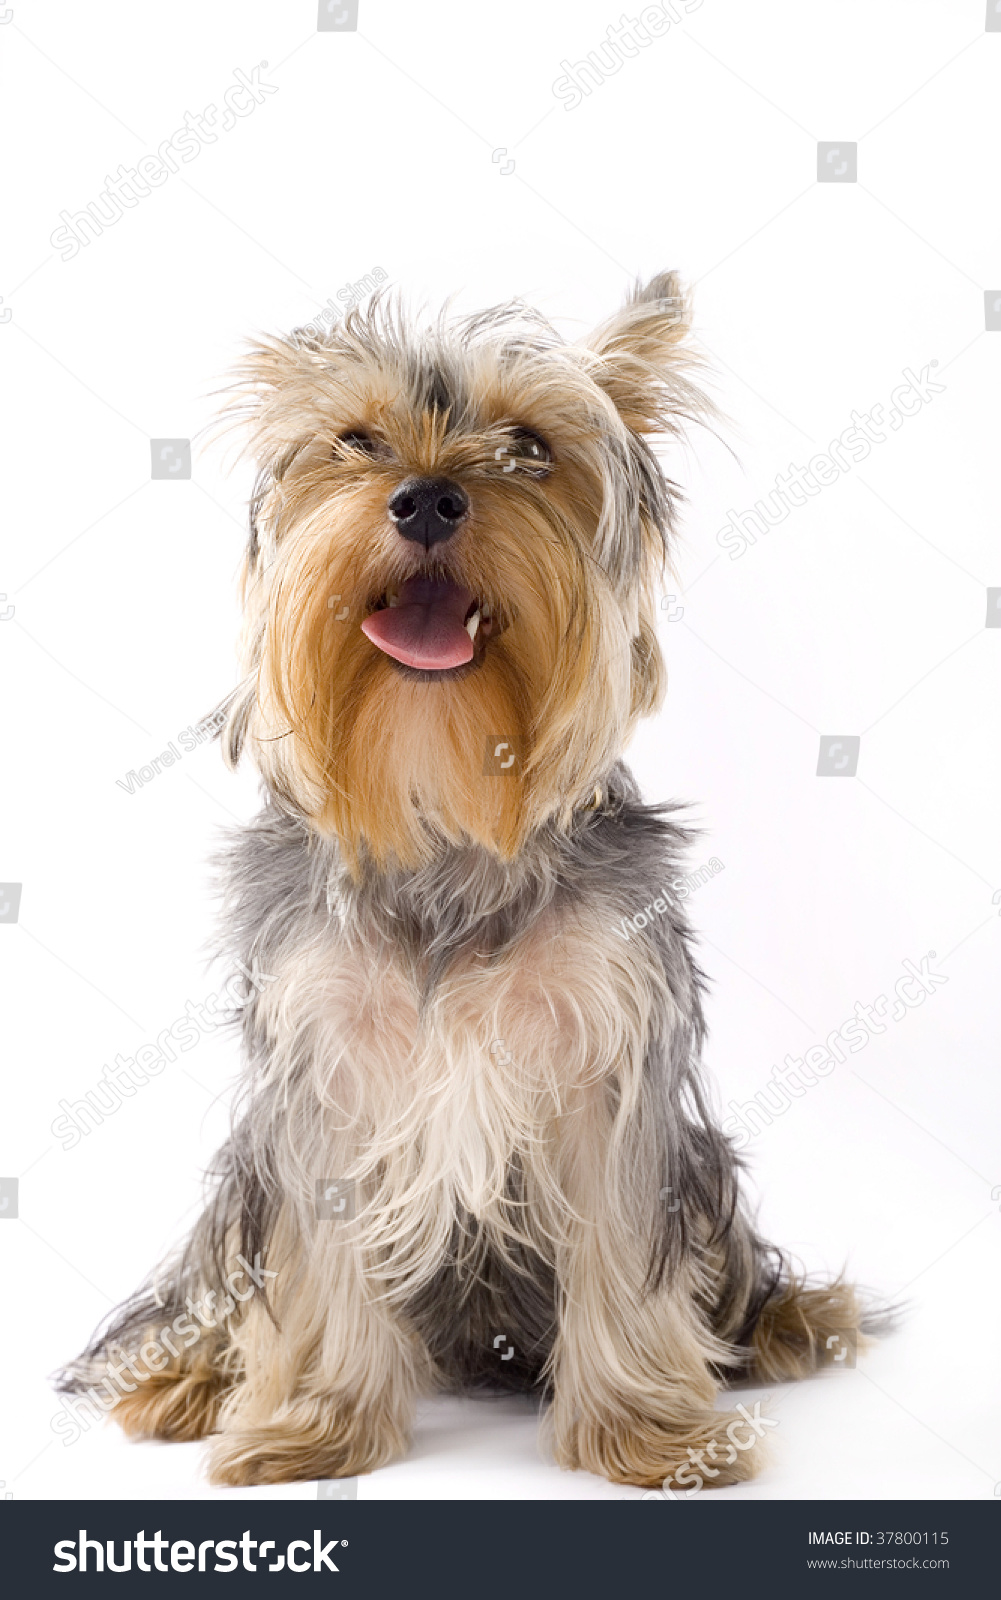 picture of a seated puppy yorkshire terrier over white background